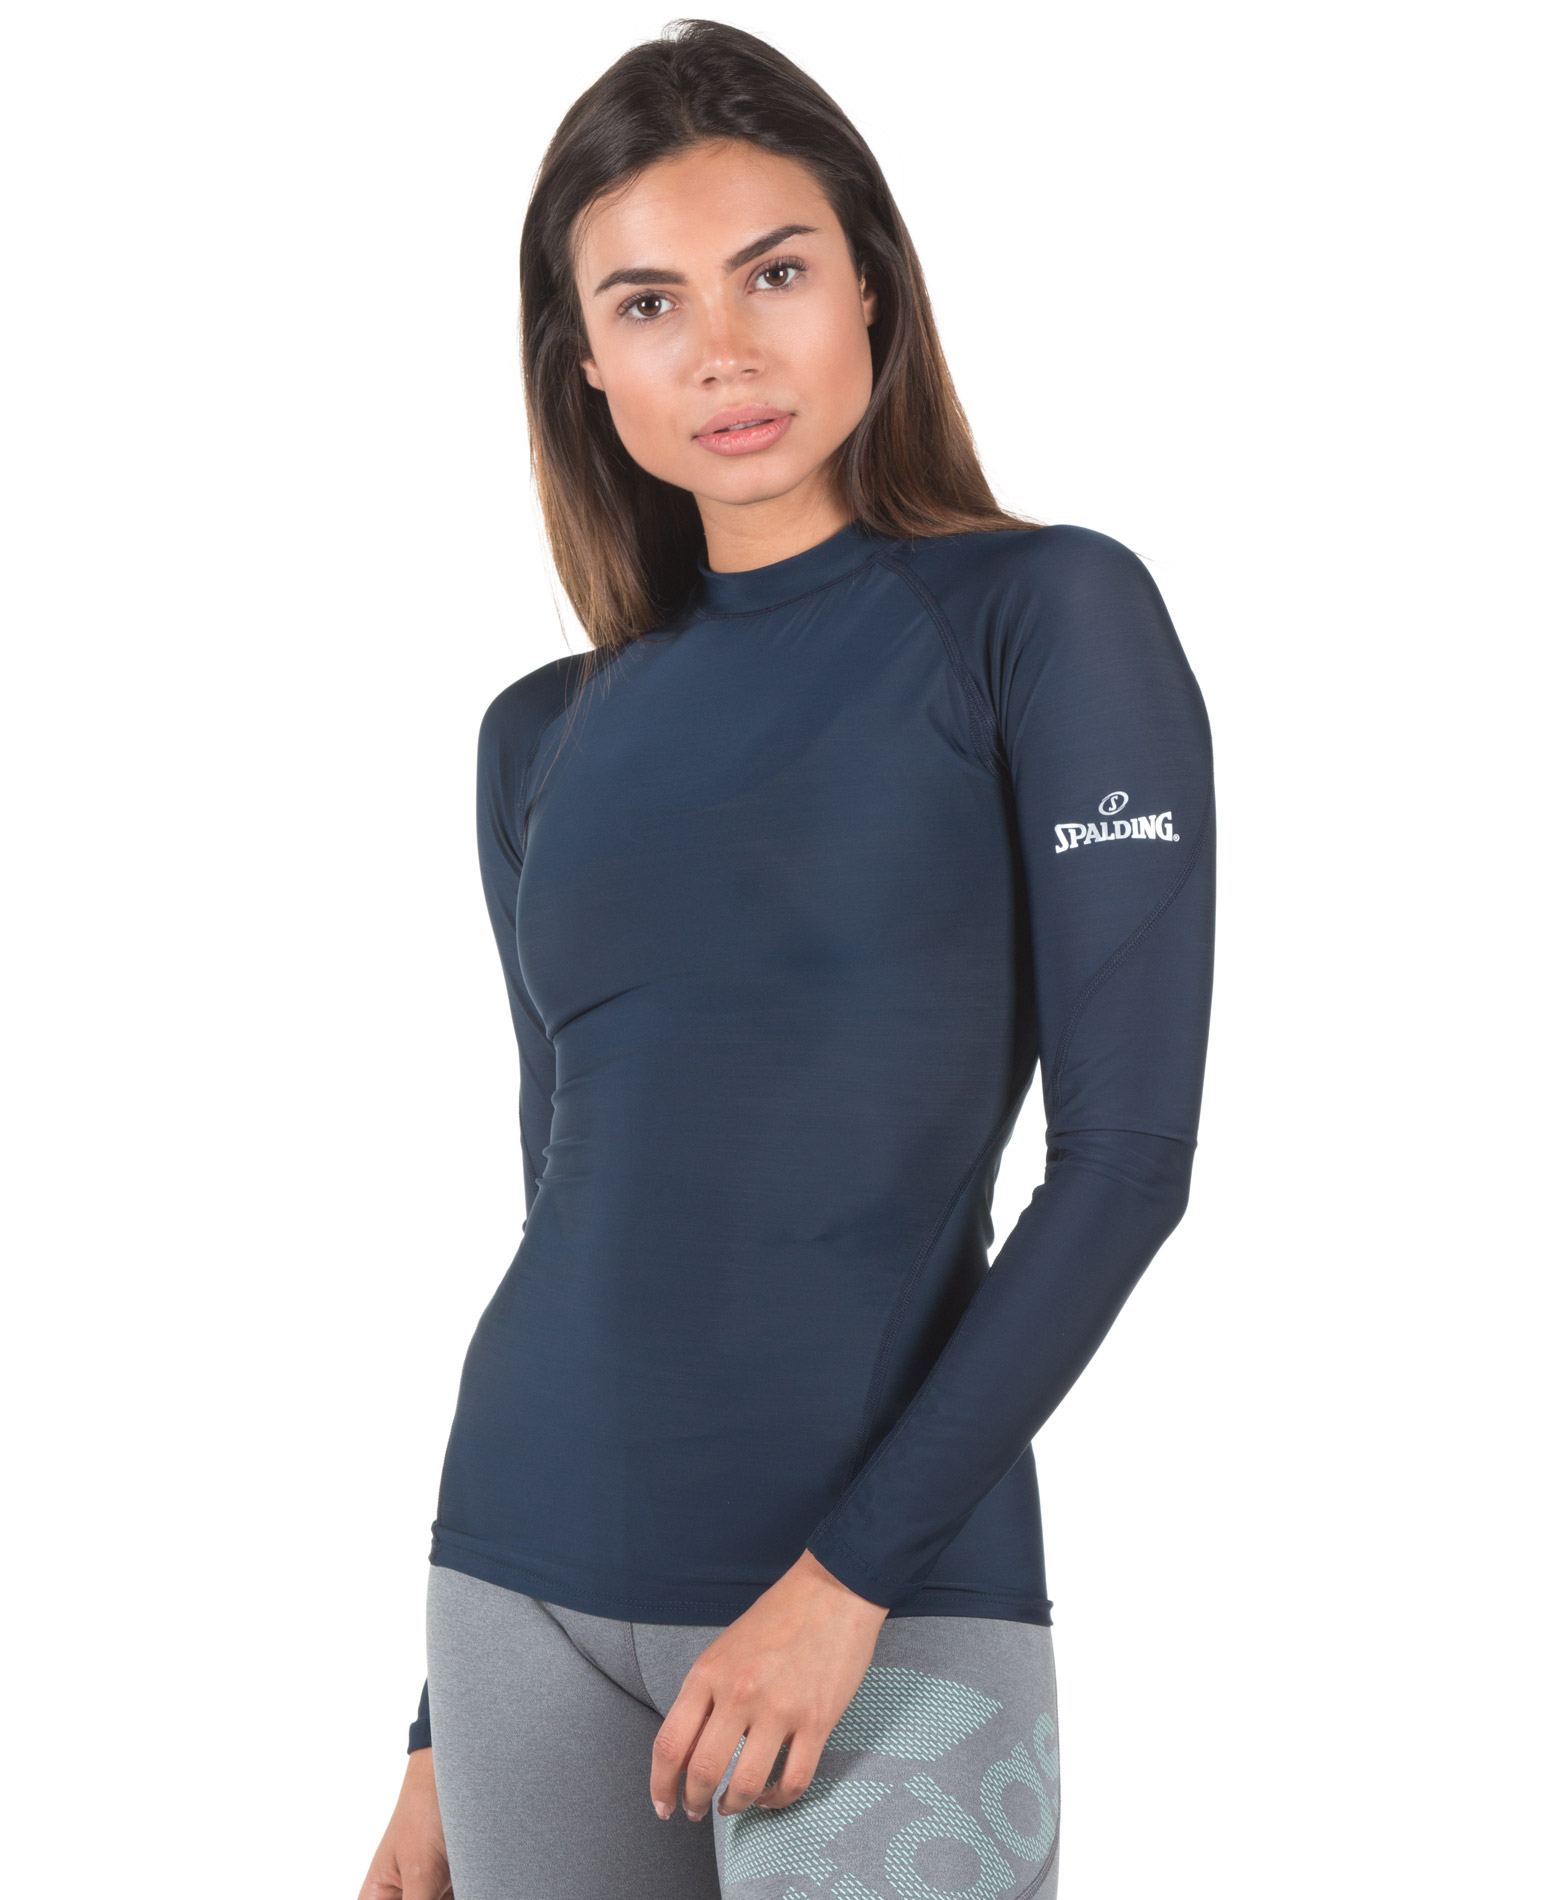 SPALDING LADIES RESPONSE LS BASE LAYER 0SB010-32 Μπλε